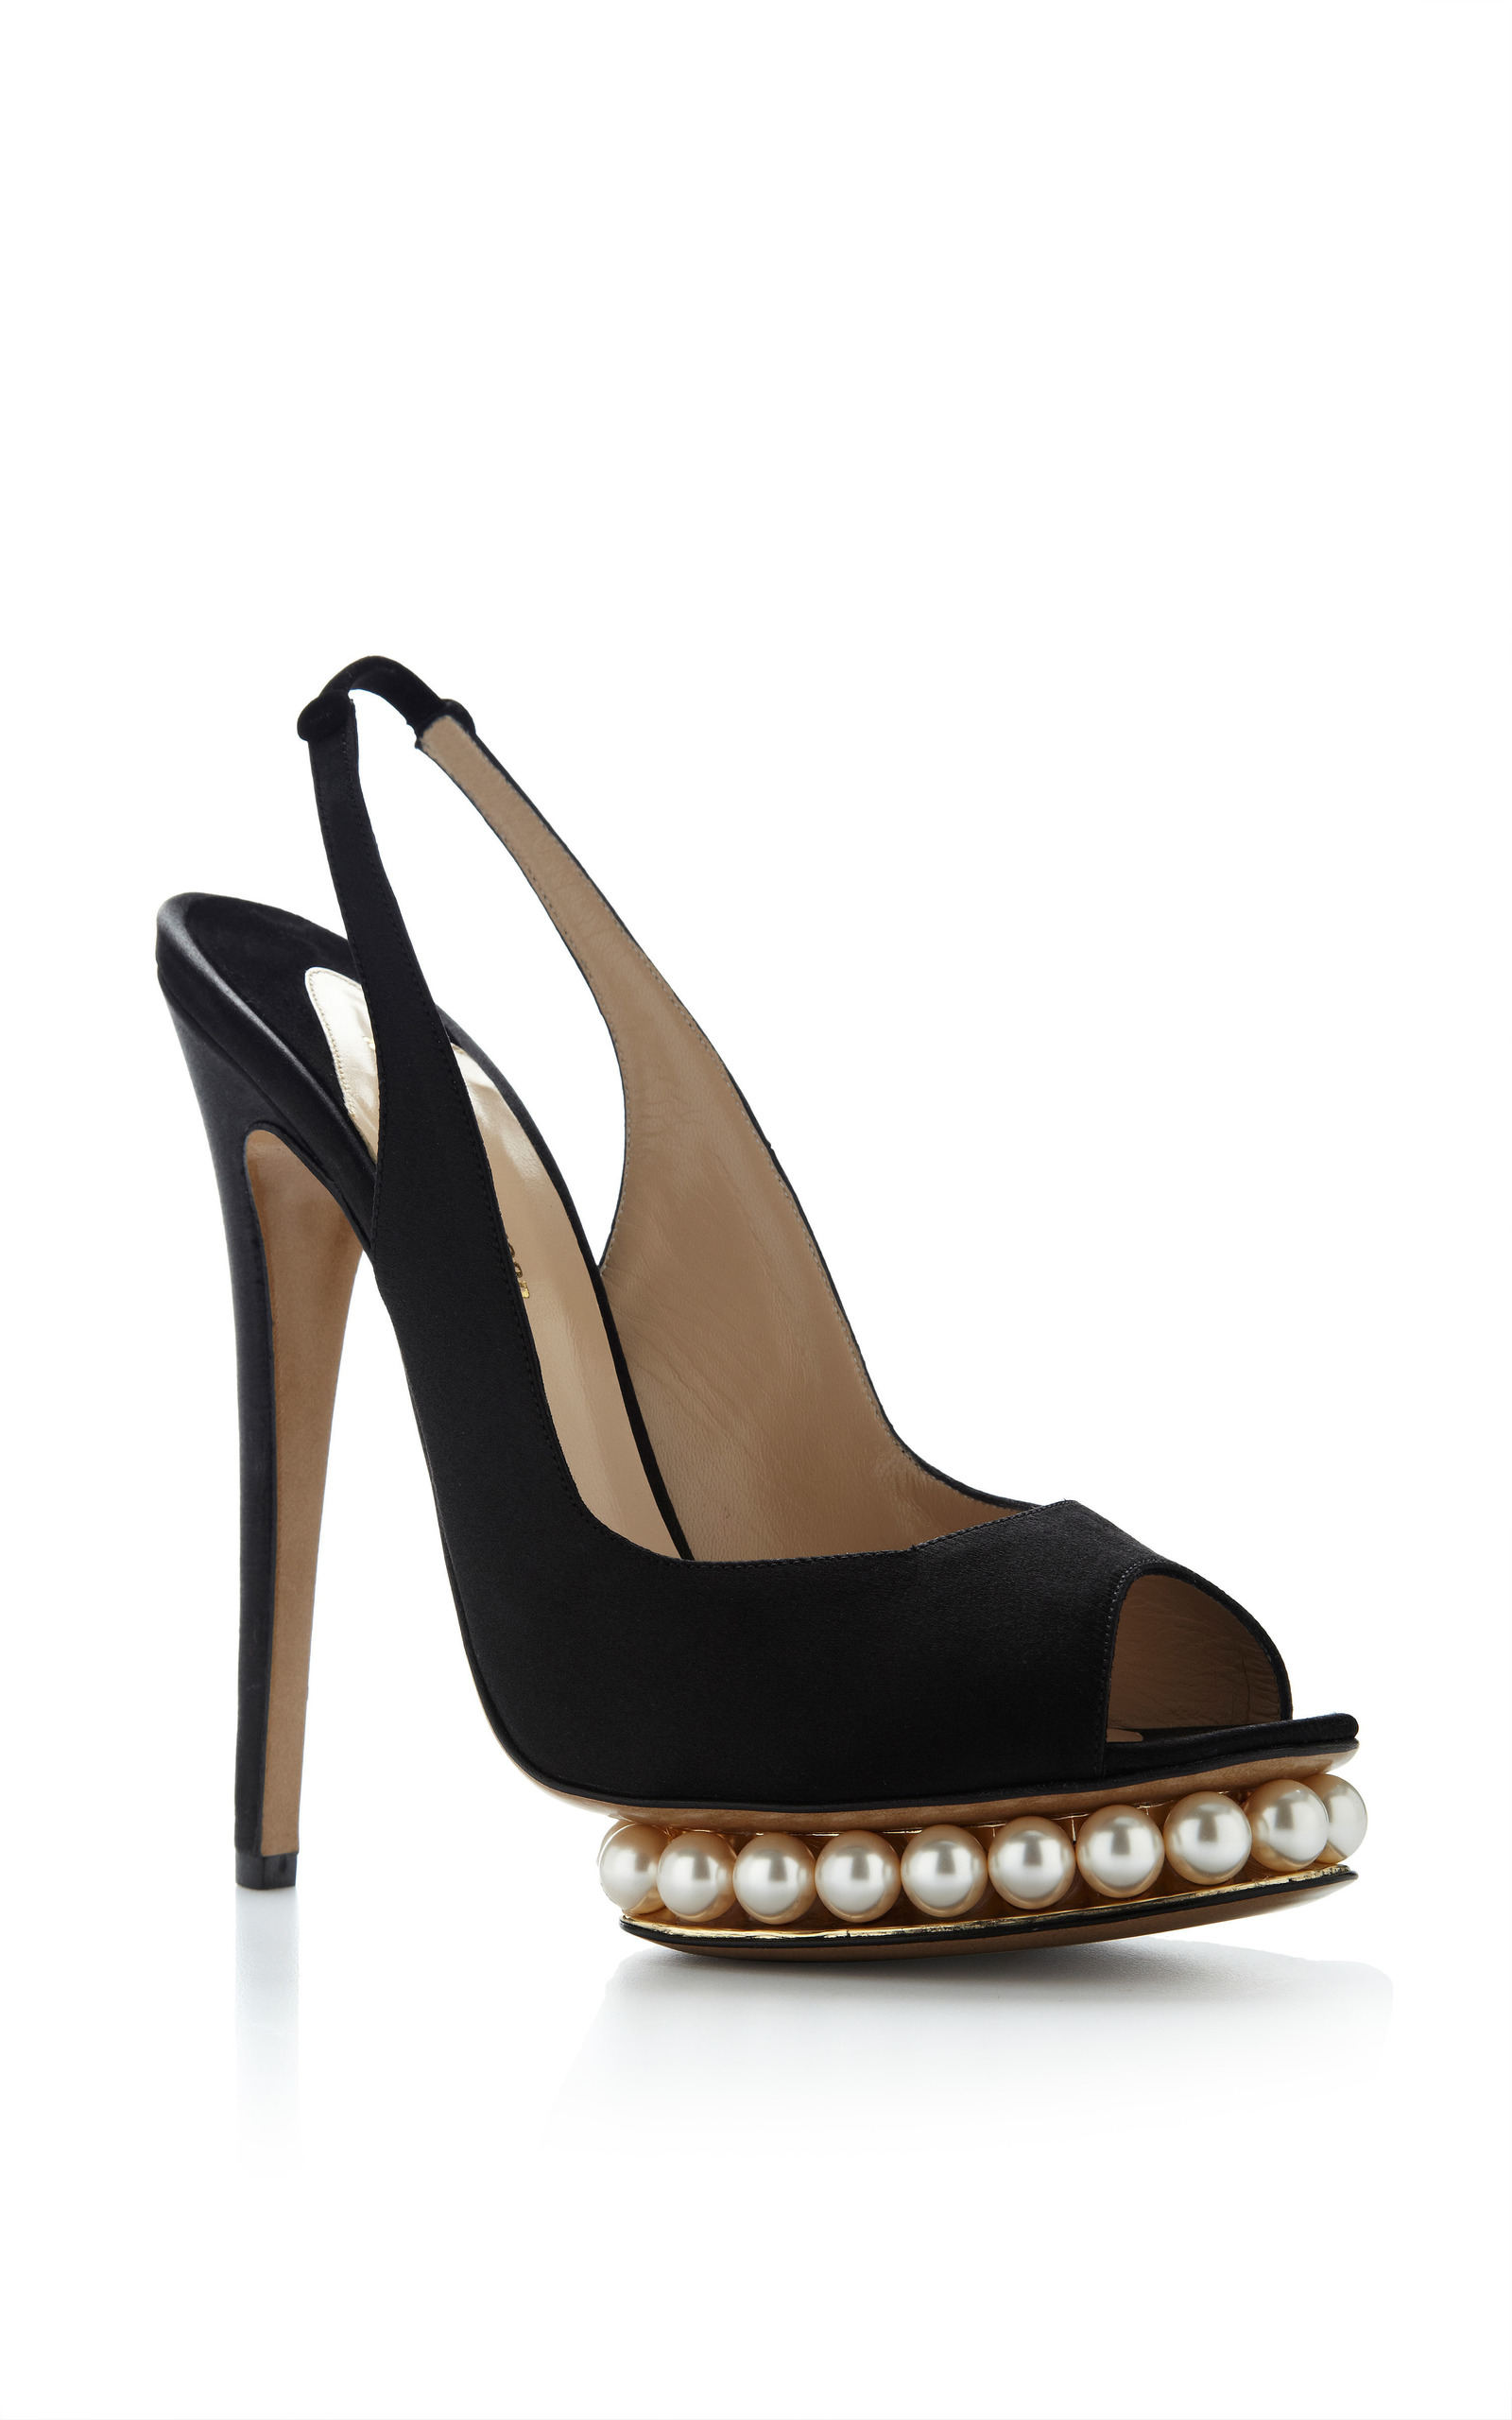 free shipping best Nicholas Kirkwood Satin Pearl-Embellished Pumps cheap good selling free shipping supply piaH3HGoq6